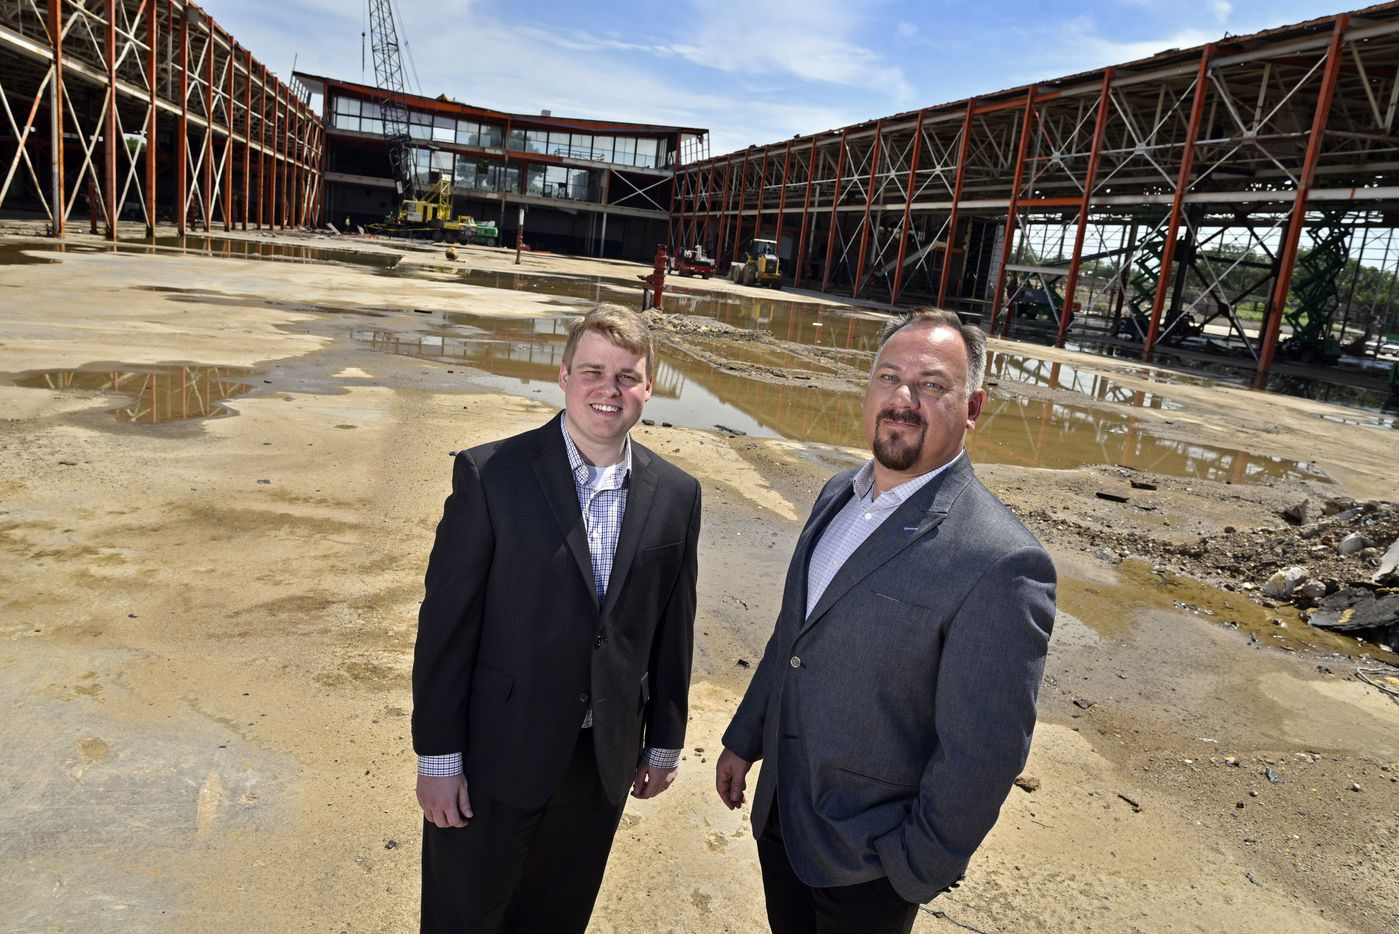 Casey Park (left), director of investments at TAC Investments, and Tad Perryman, VP of marketing at The Arnold Cos., outside of the old Braniff base at Dallas Love Field. The landmark Braniff buildings are being turned into a business center.